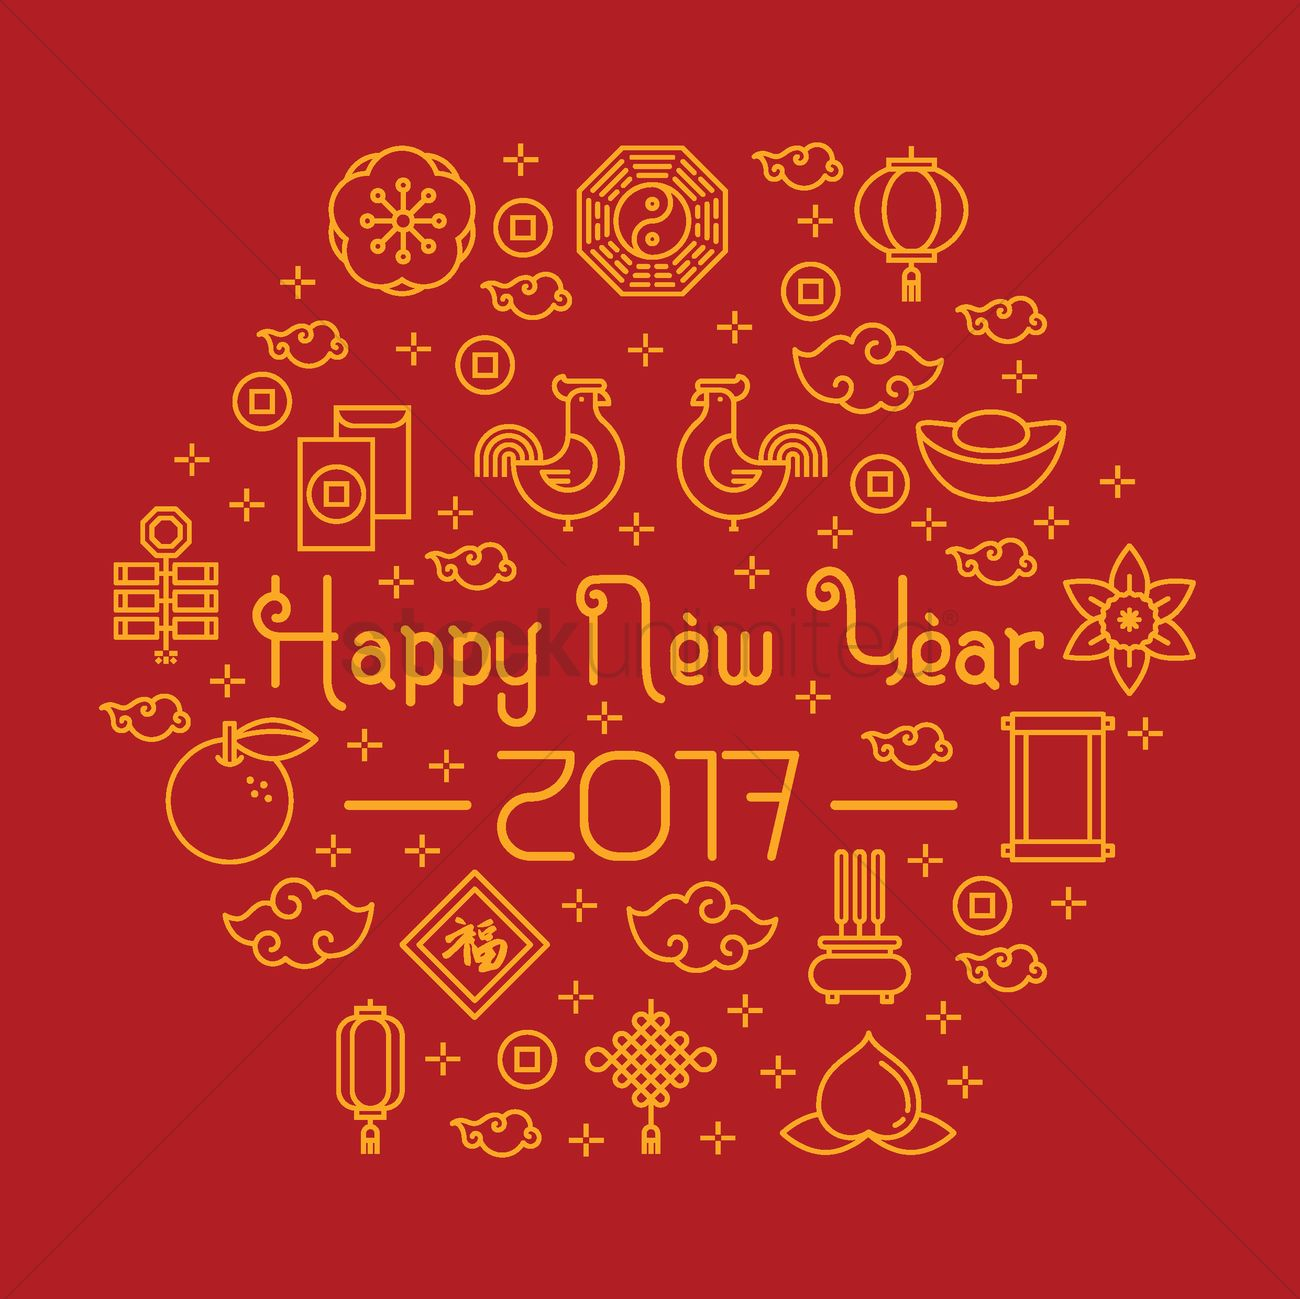 Happy Chinese New Year Greeting Vector Image 1968272 Stockunlimited